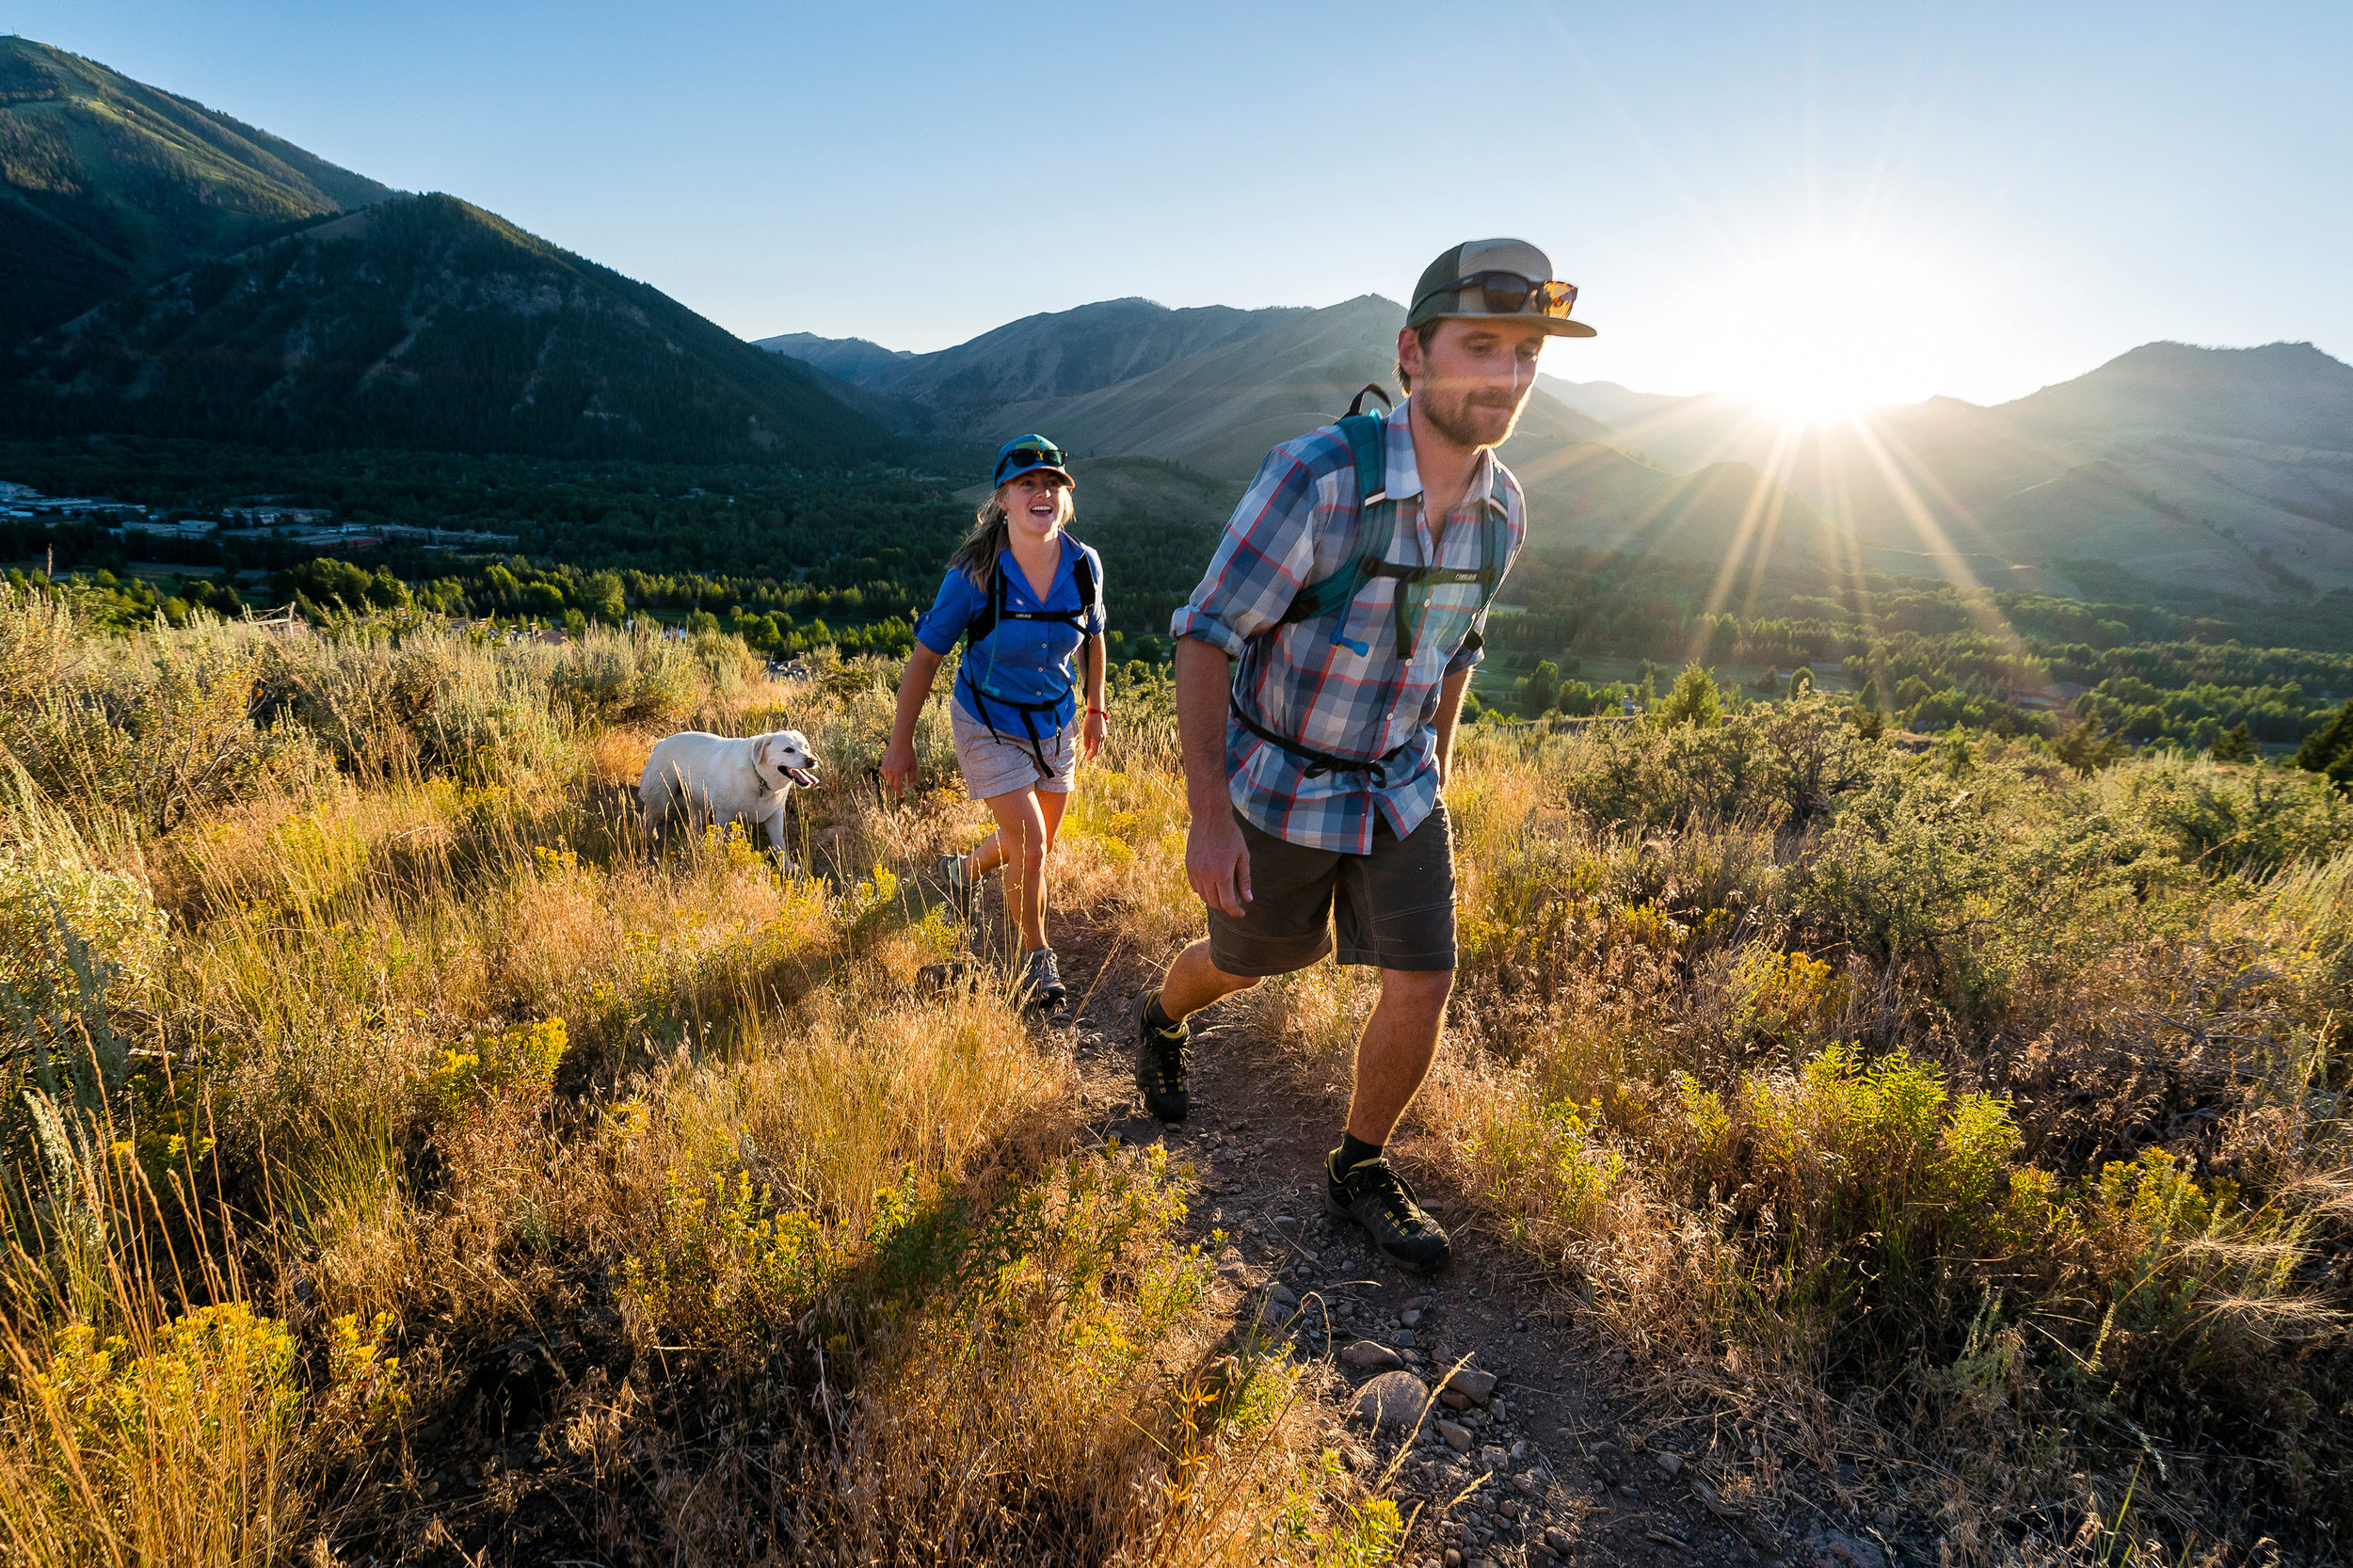 outdoor_lifestyle_Idaho_Ketchum_hiking_Stephen_matera_7-19-18_a9_DSC2483.jpg